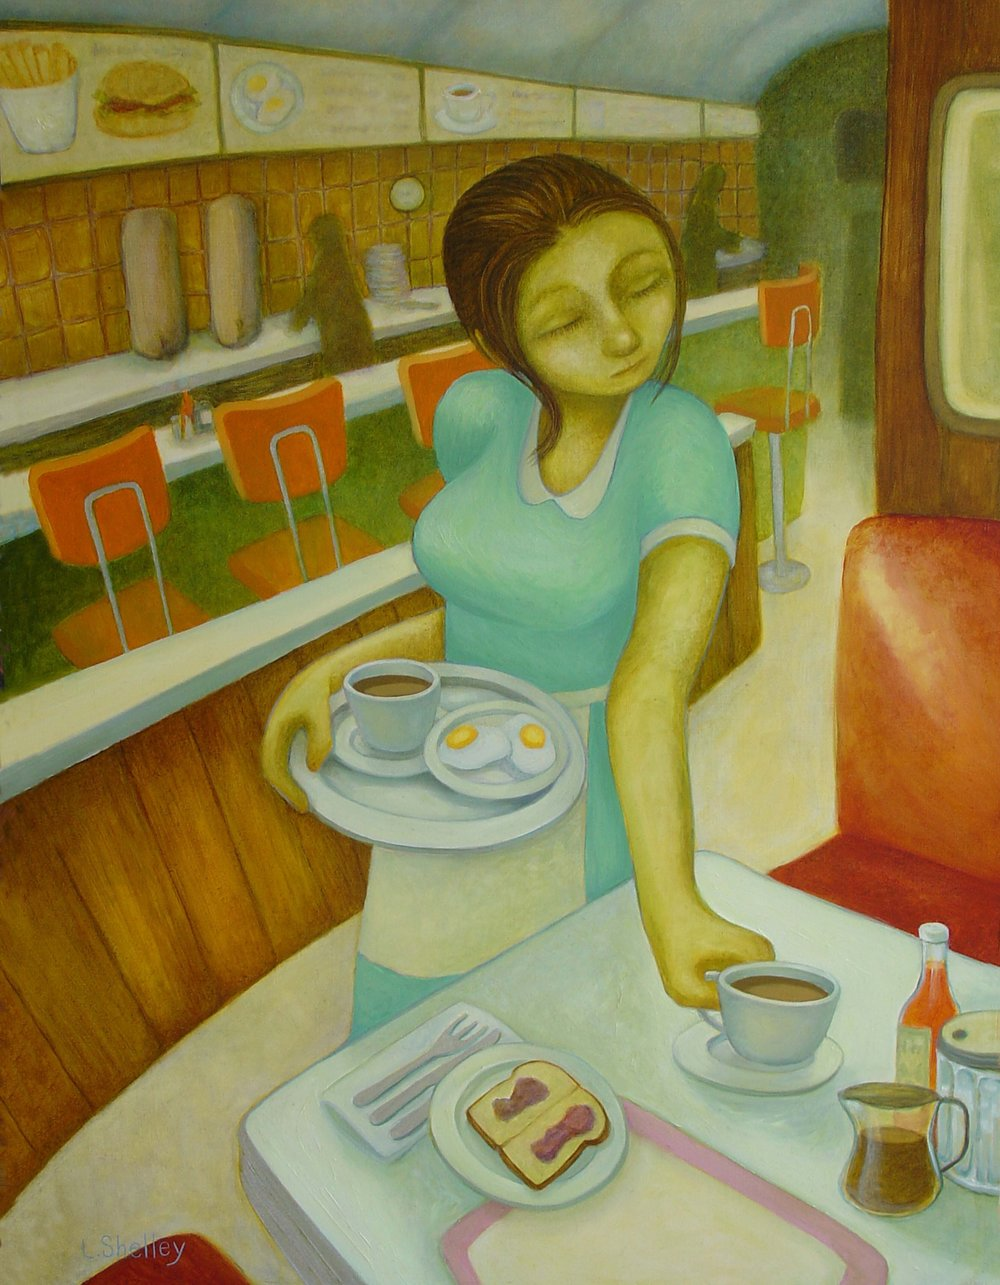 Diner Series - Coffee with Toast and Jelly - sold